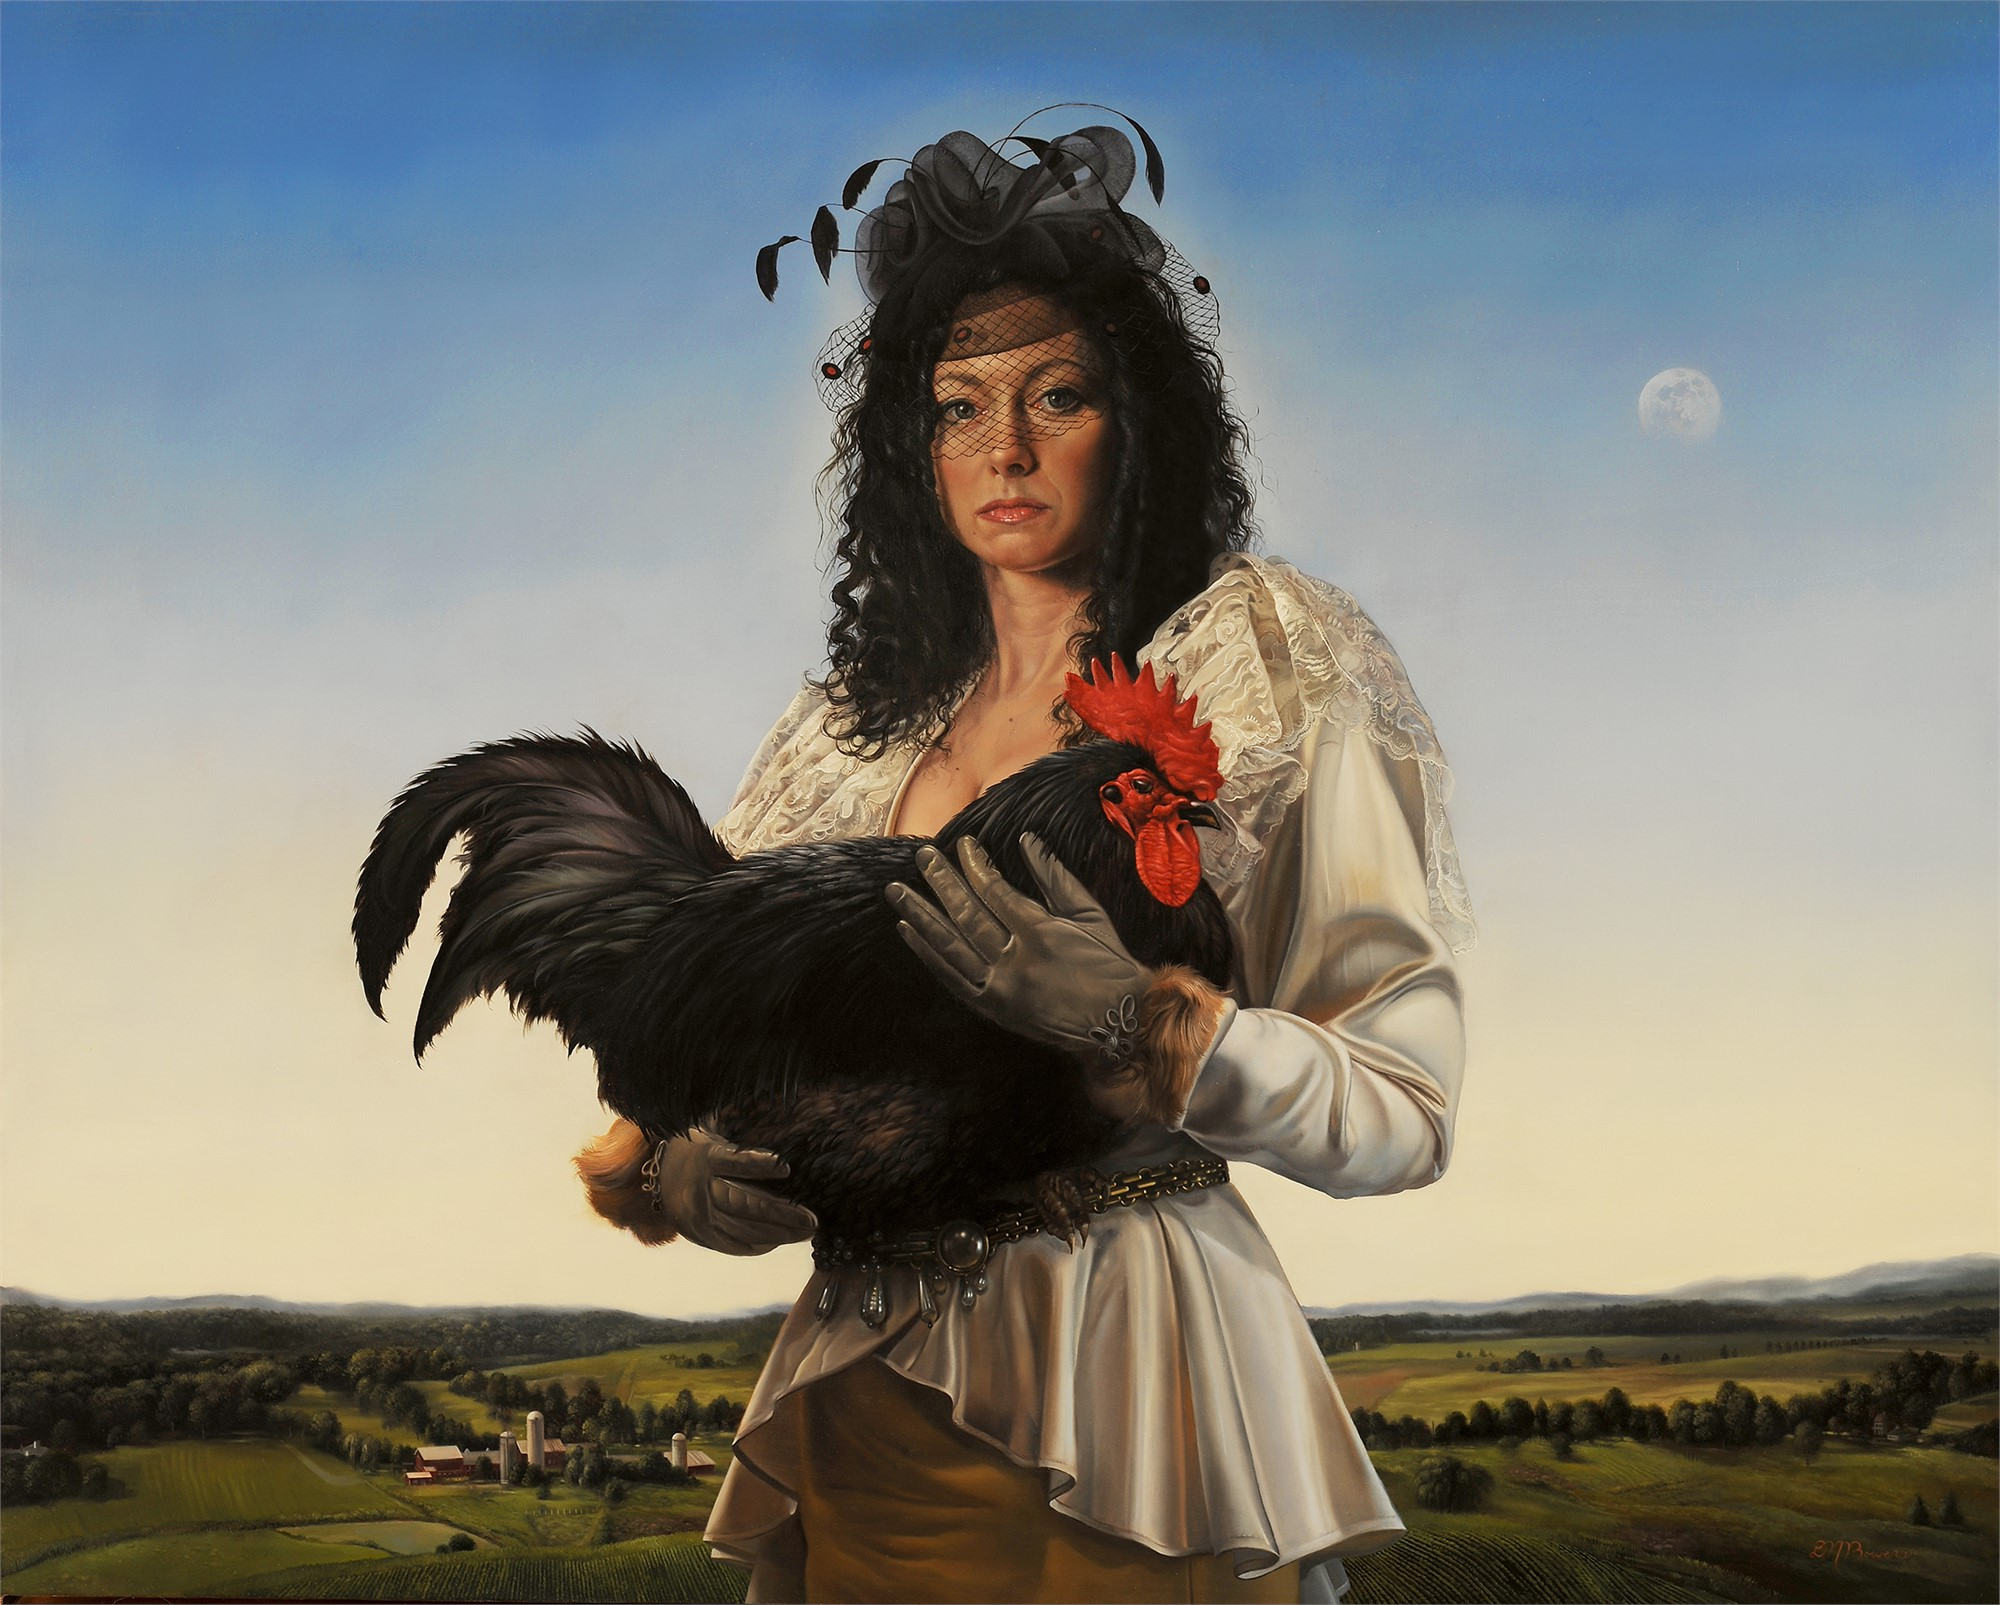 Cock Thief by David Michael Bowers